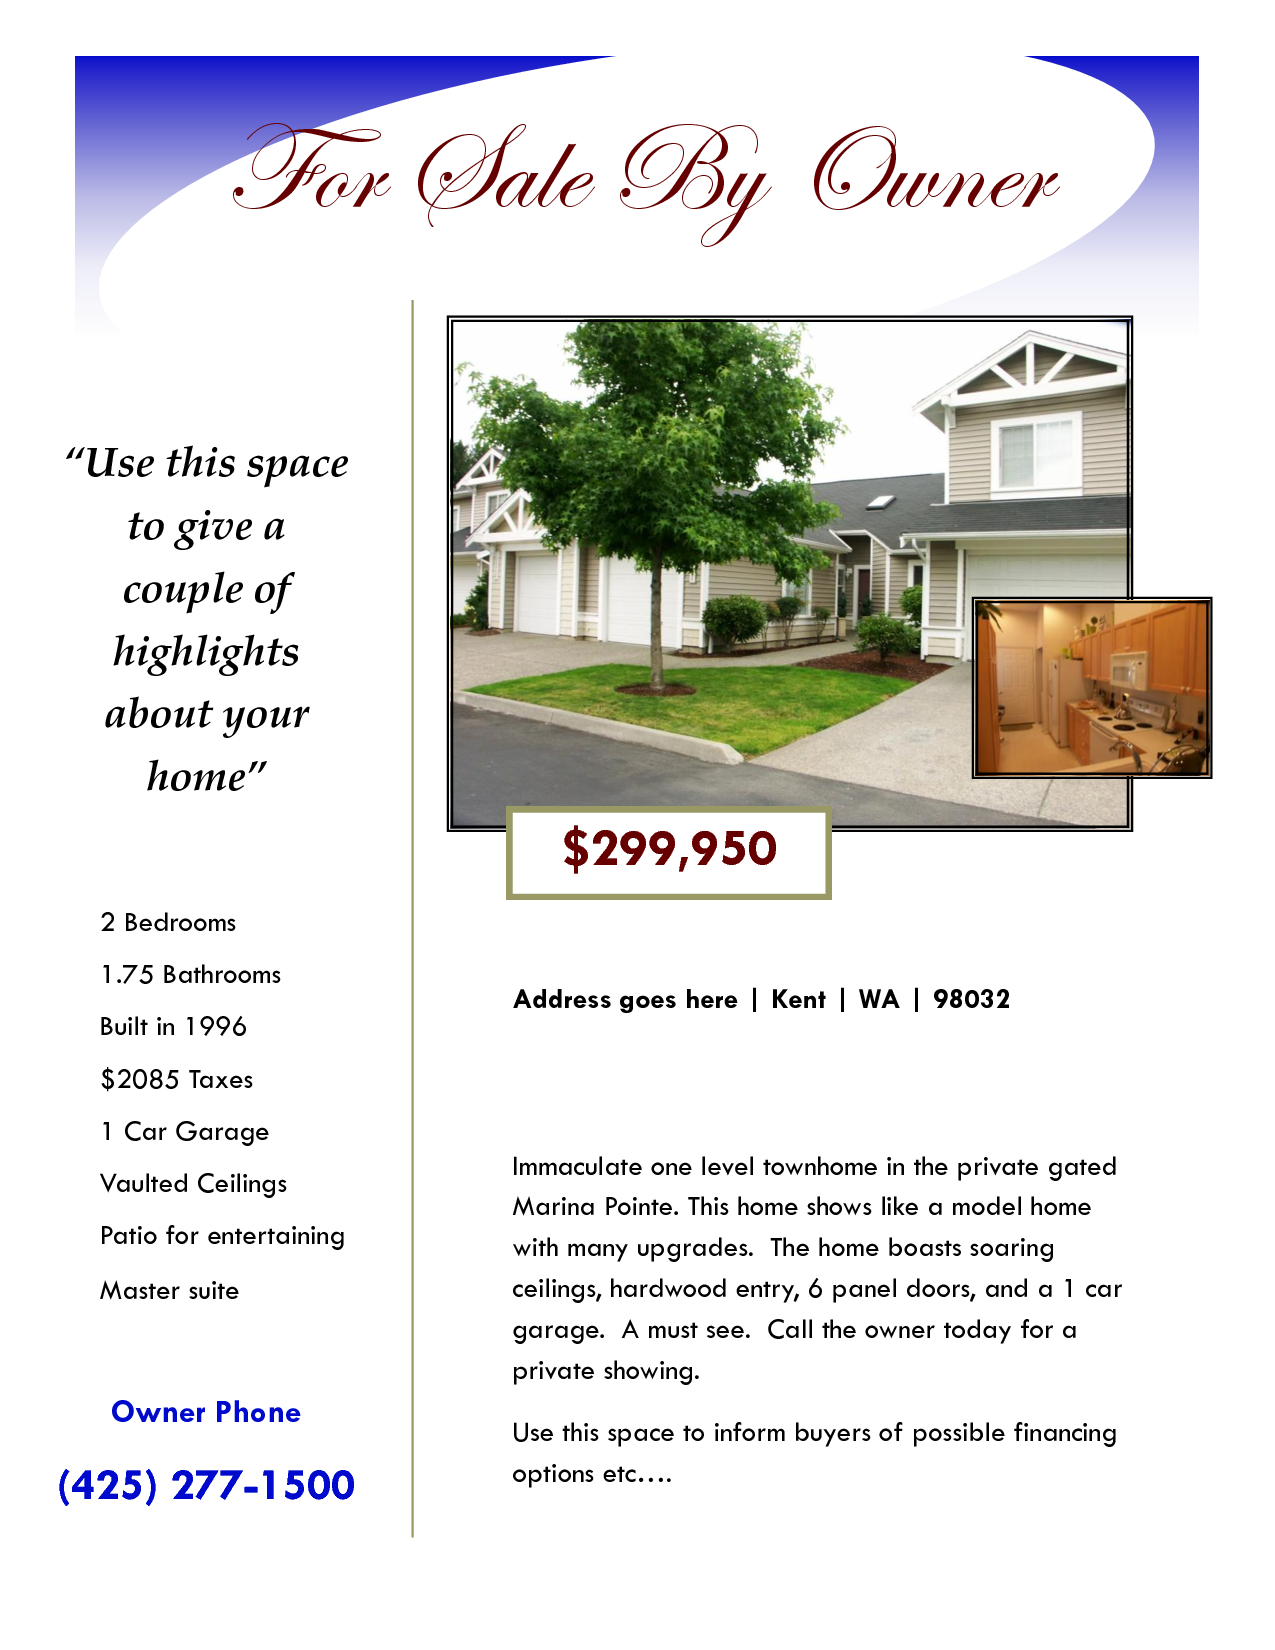 house for sale flyer Google Search – House for Sale Flyer Template